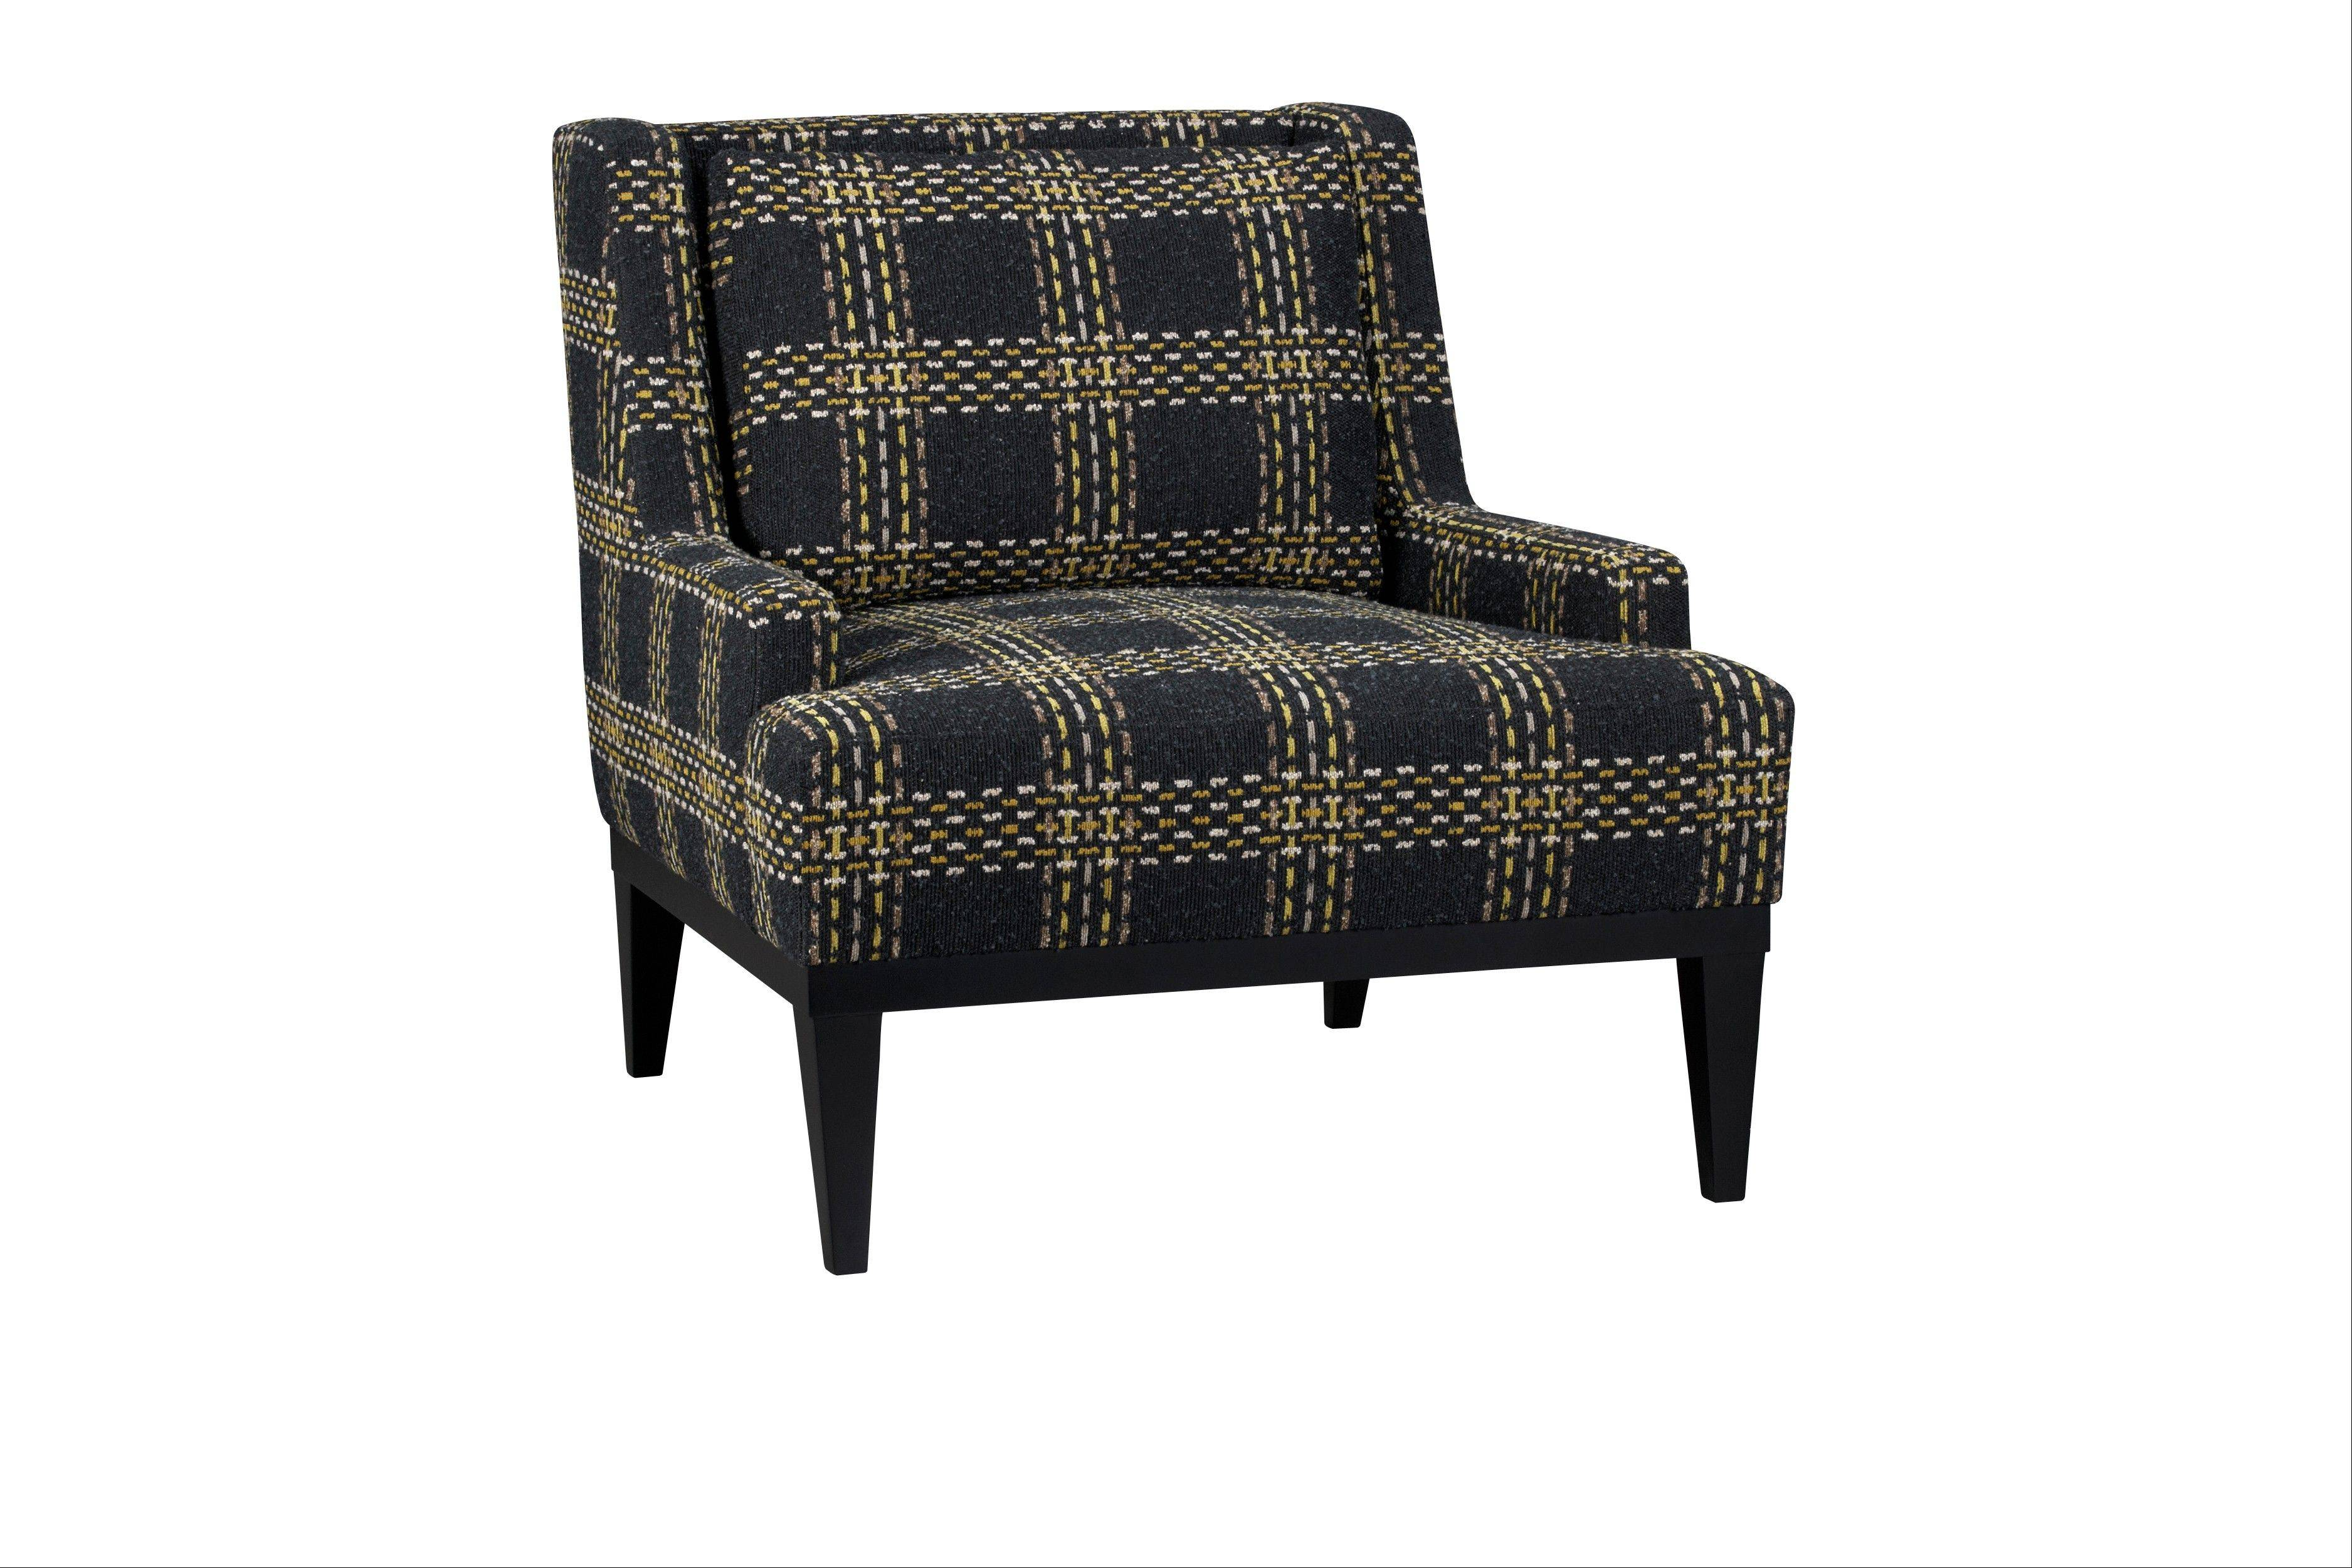 The nubby, retro plaid upholstery on a Donegal chair, part of a fall 2012 trend toward textured menswear fabrics, is shown.